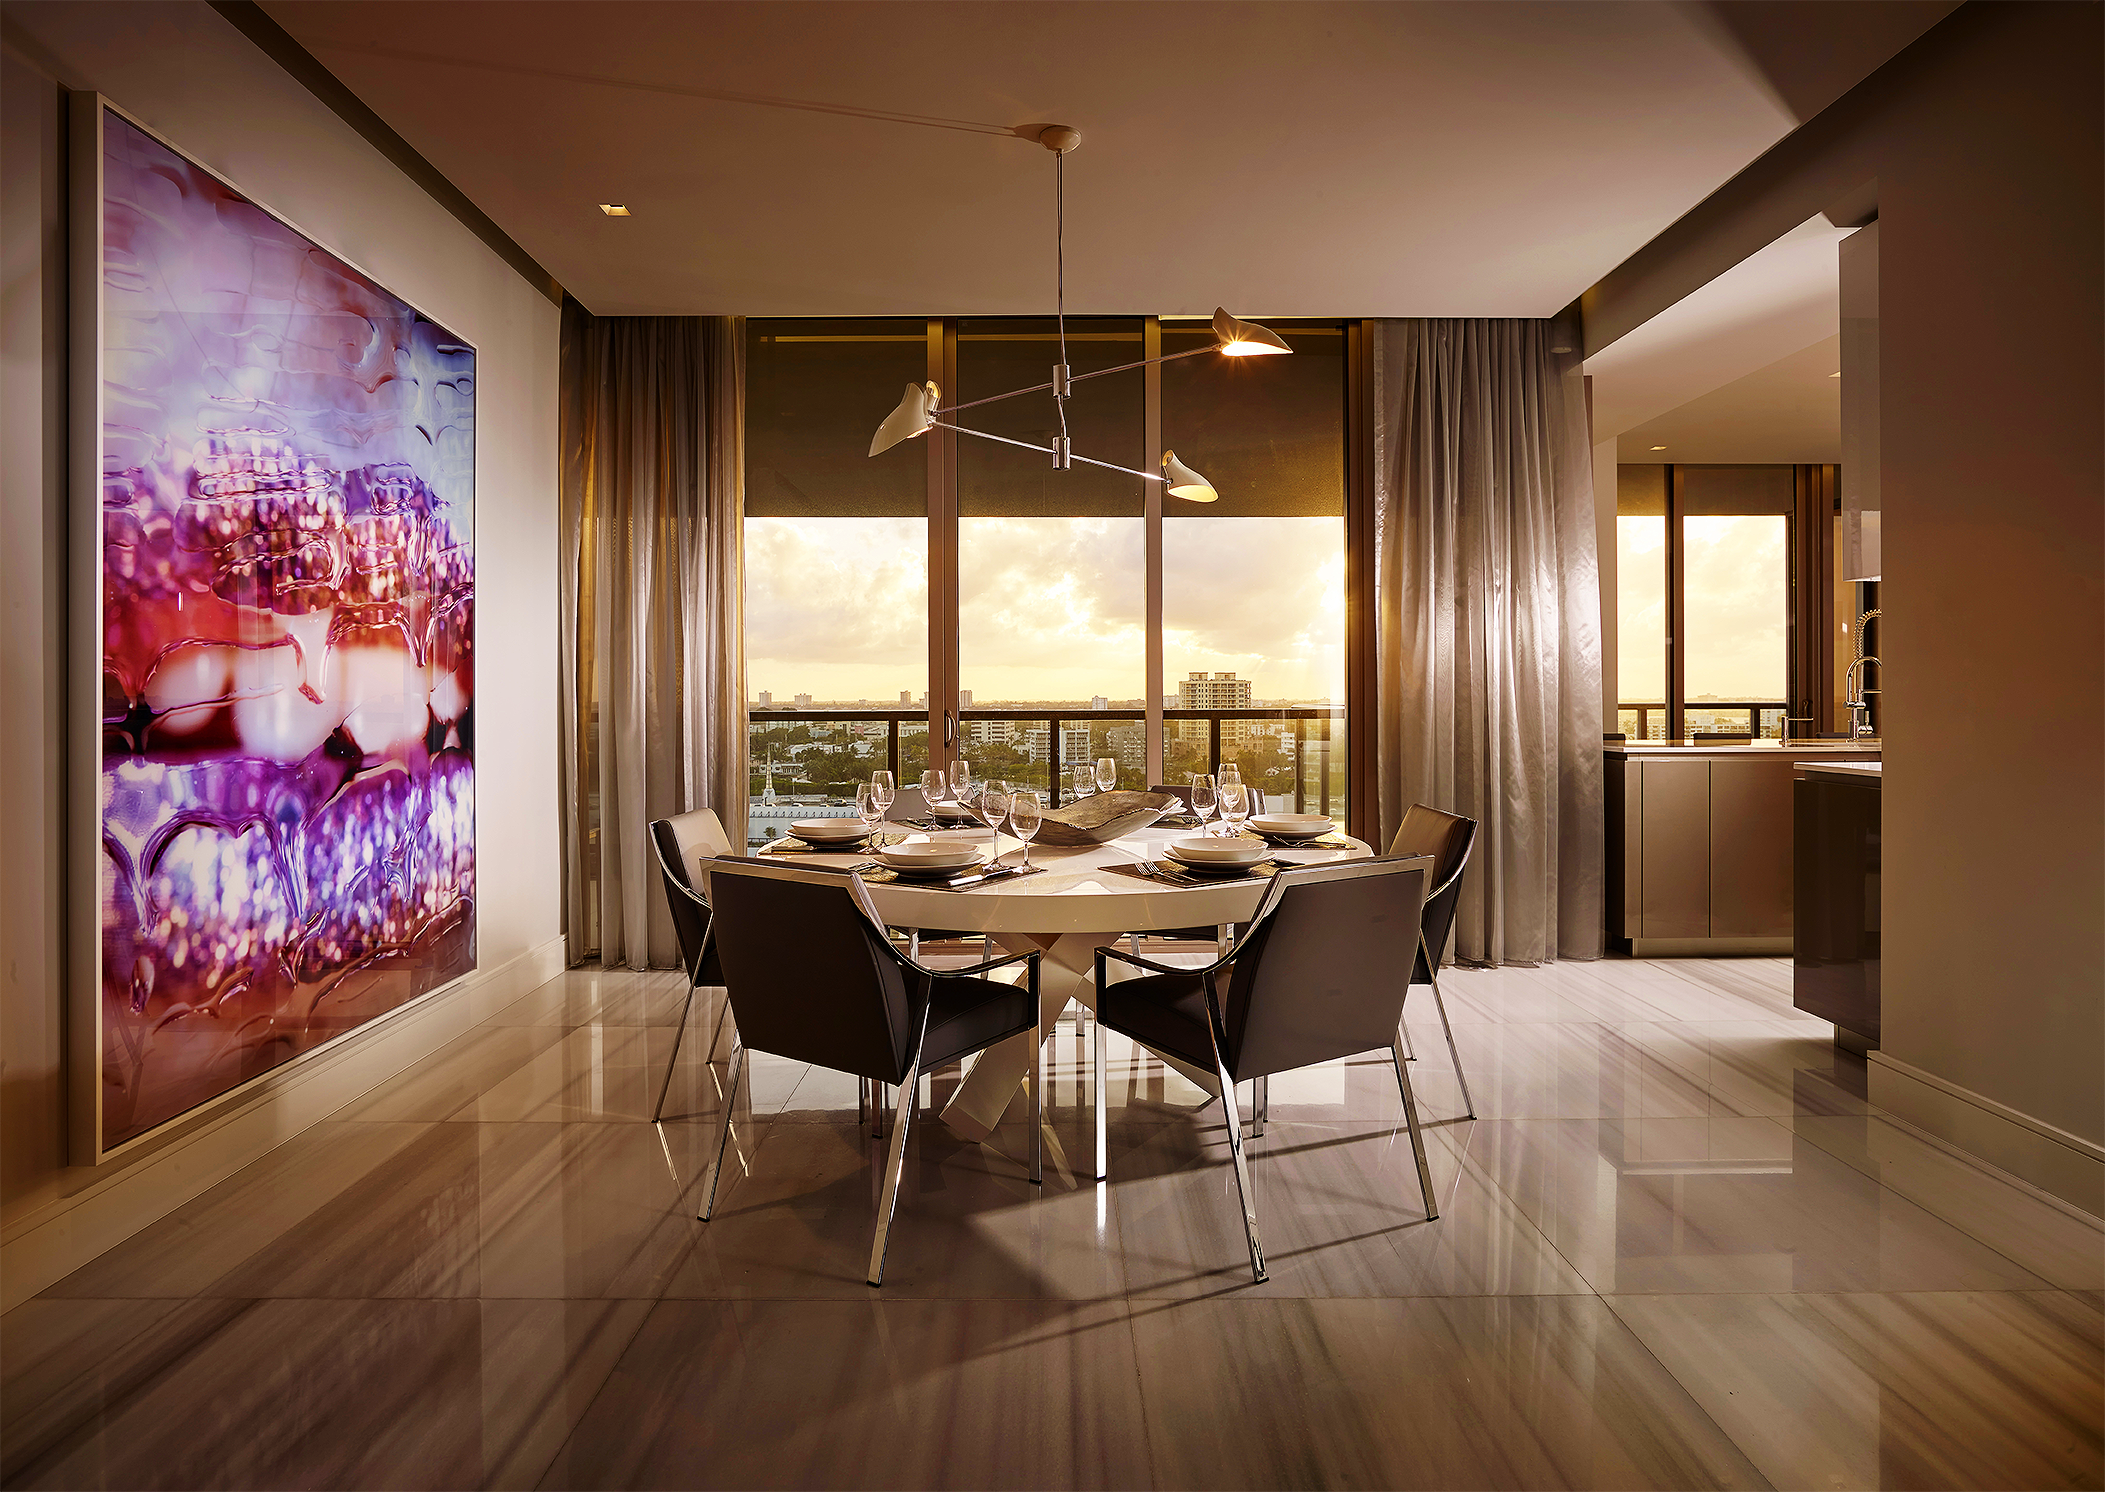 StRegis-1103s_Dining-sunset-5.png